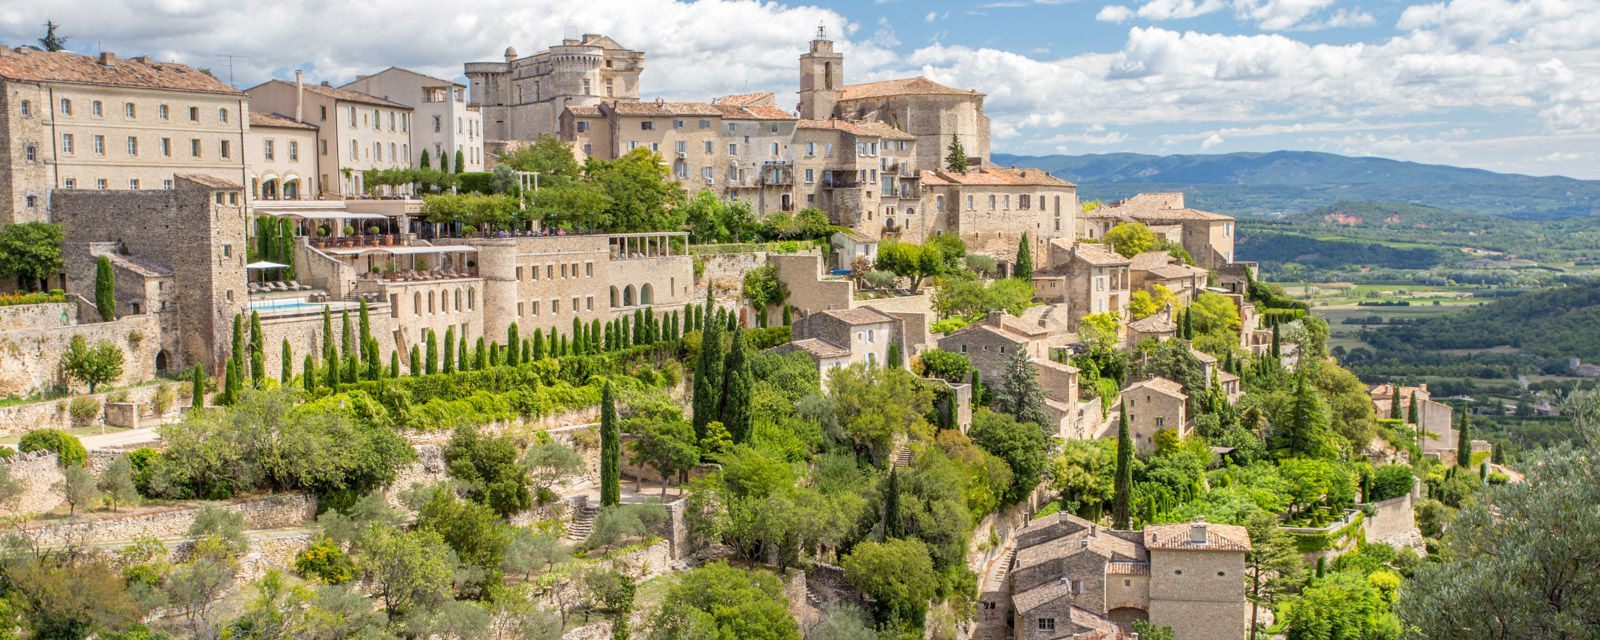 Gordes village, Luberon, Provence, France